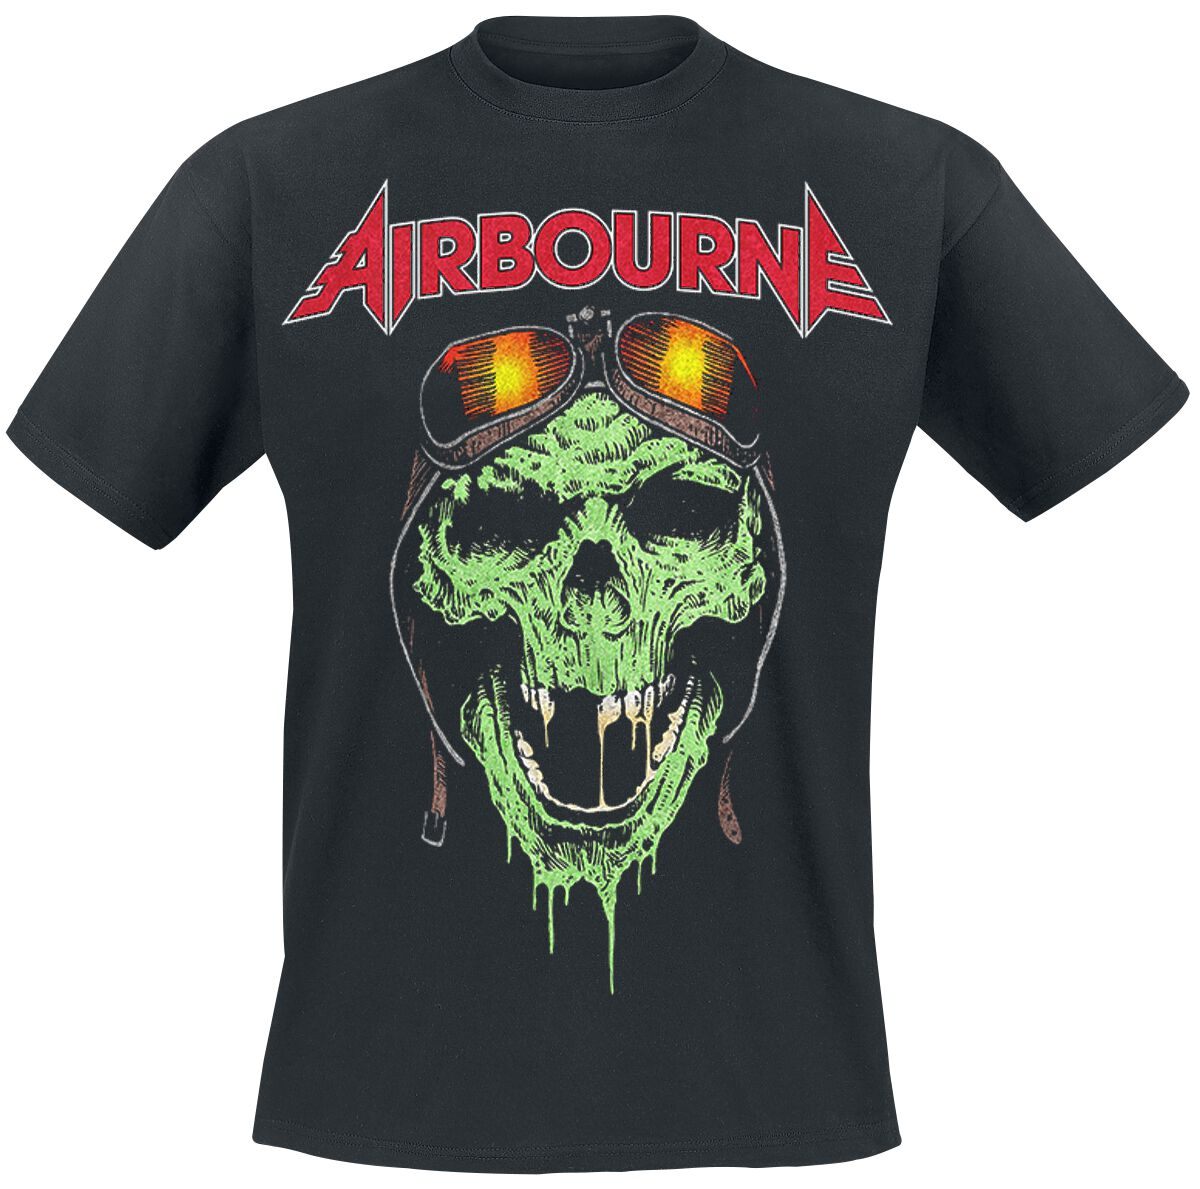 Image of Airbourne Hell Pilot T-Shirt schwarz